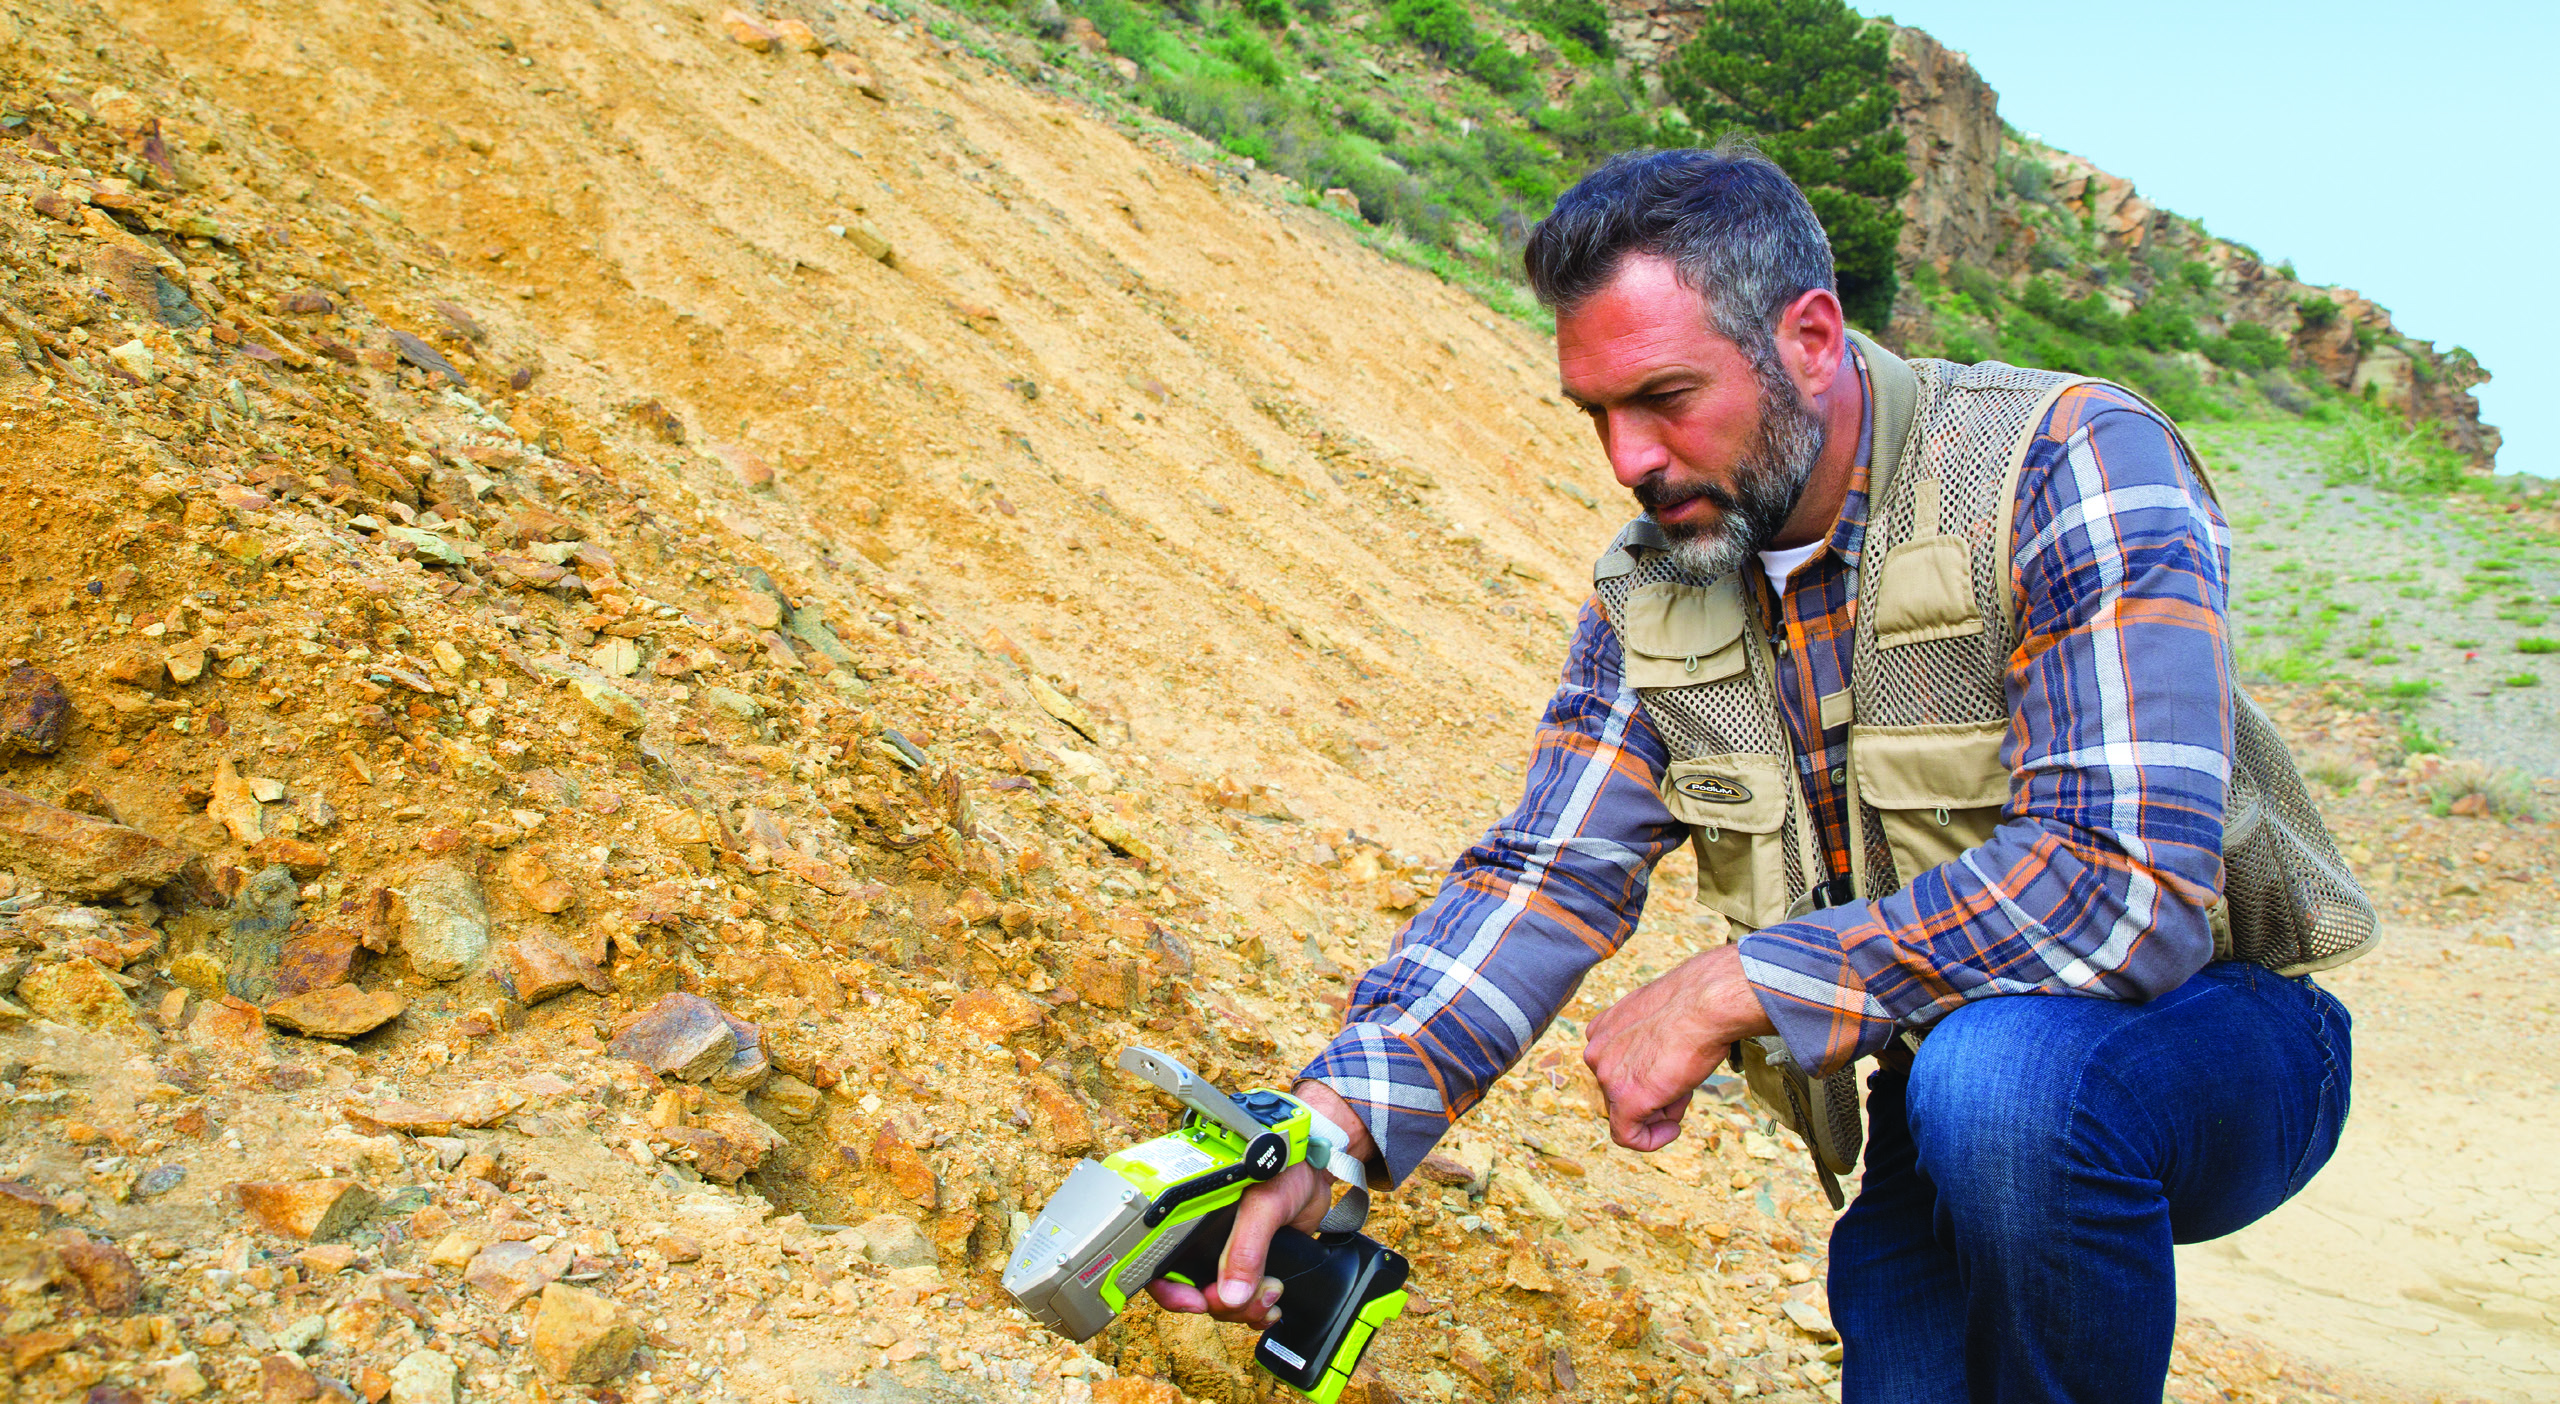 Niton XL5 In Field analysing geochemical materials